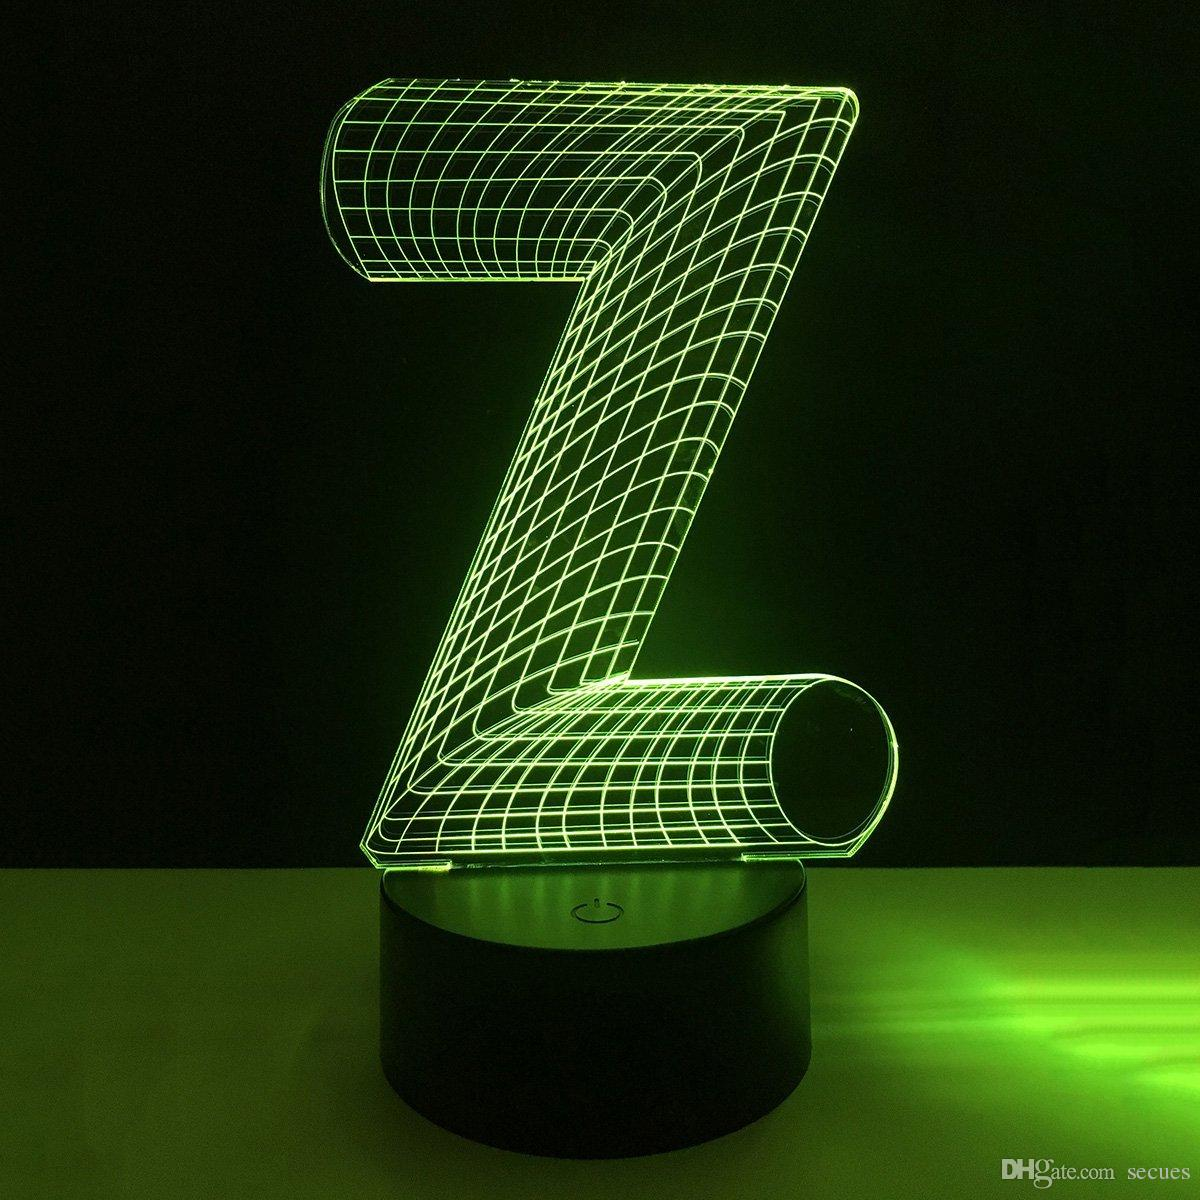 New Z Letter Shape 3D Illusion LED Lamp Letters Decoration Lamp DC 5V USB Powered 5th Battery Wholesale Free Shipping